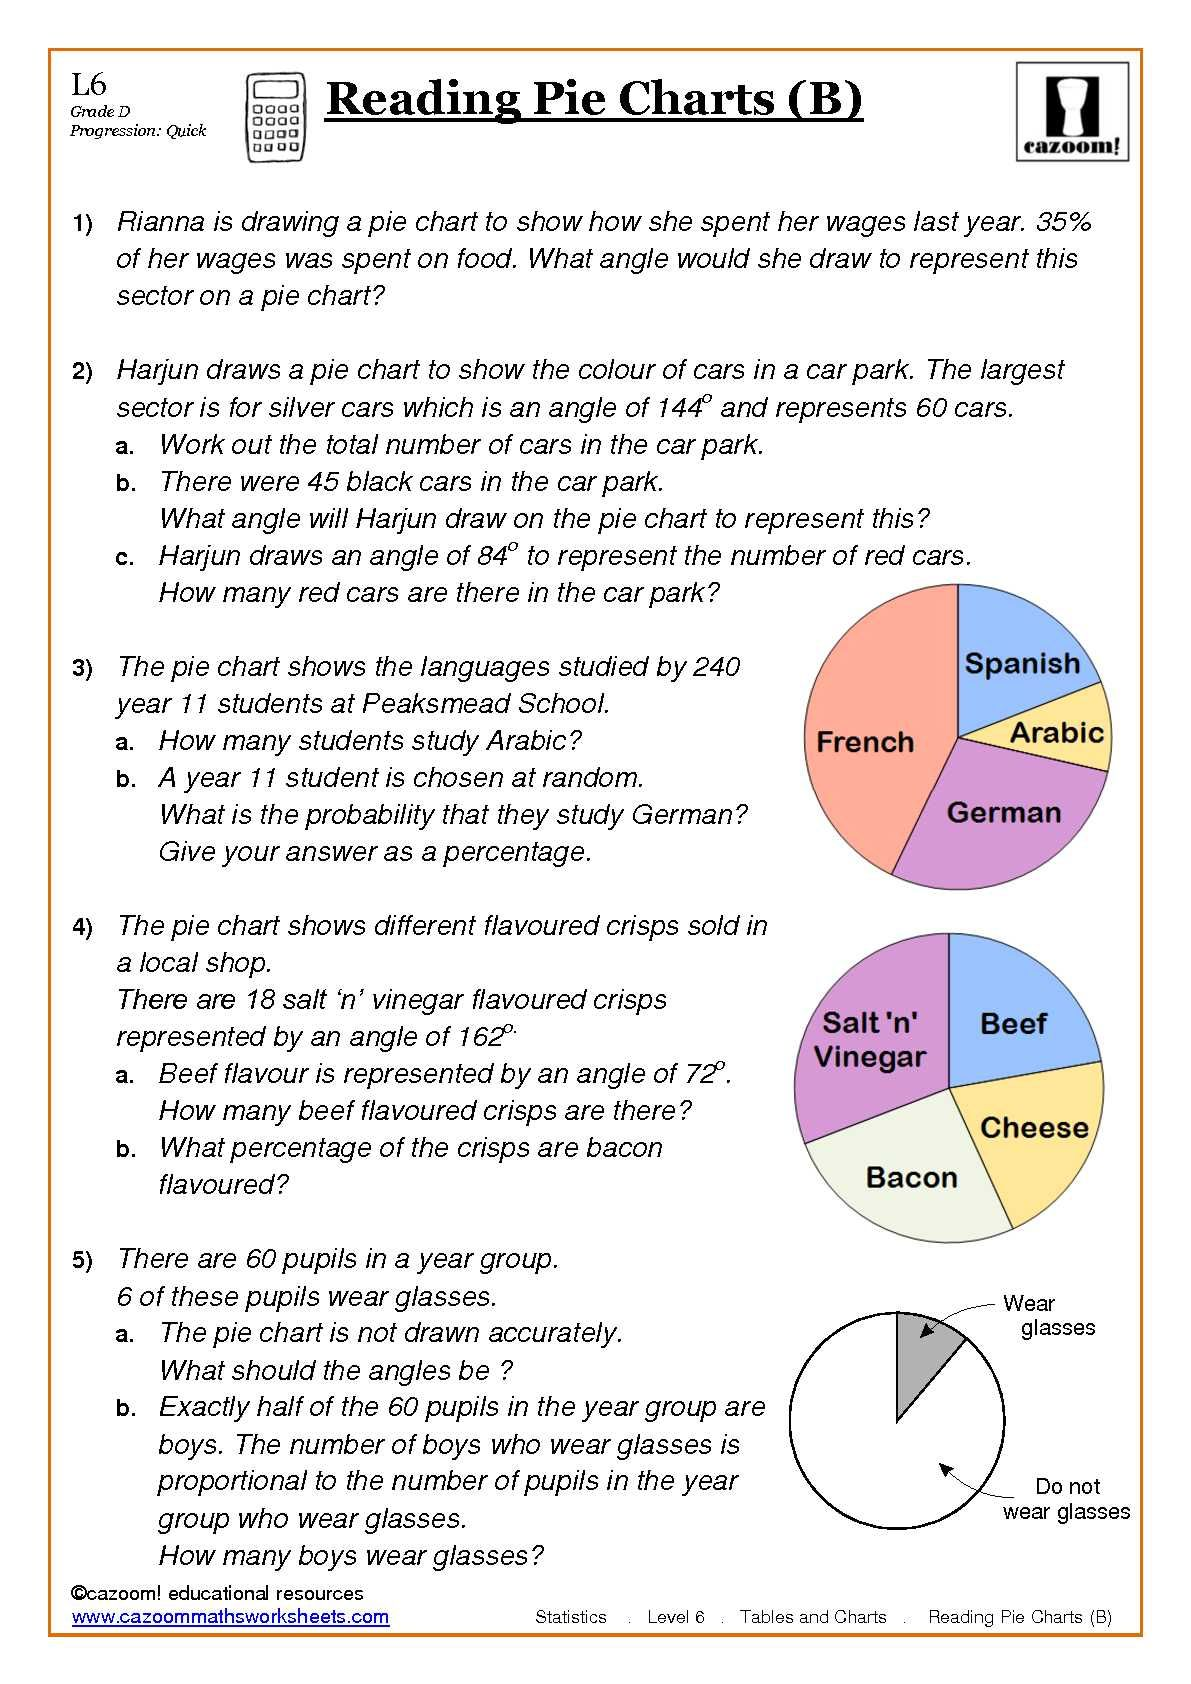 Statistics Maths Worksheets ks3 | Haircuts | Pinterest | Statistics ...